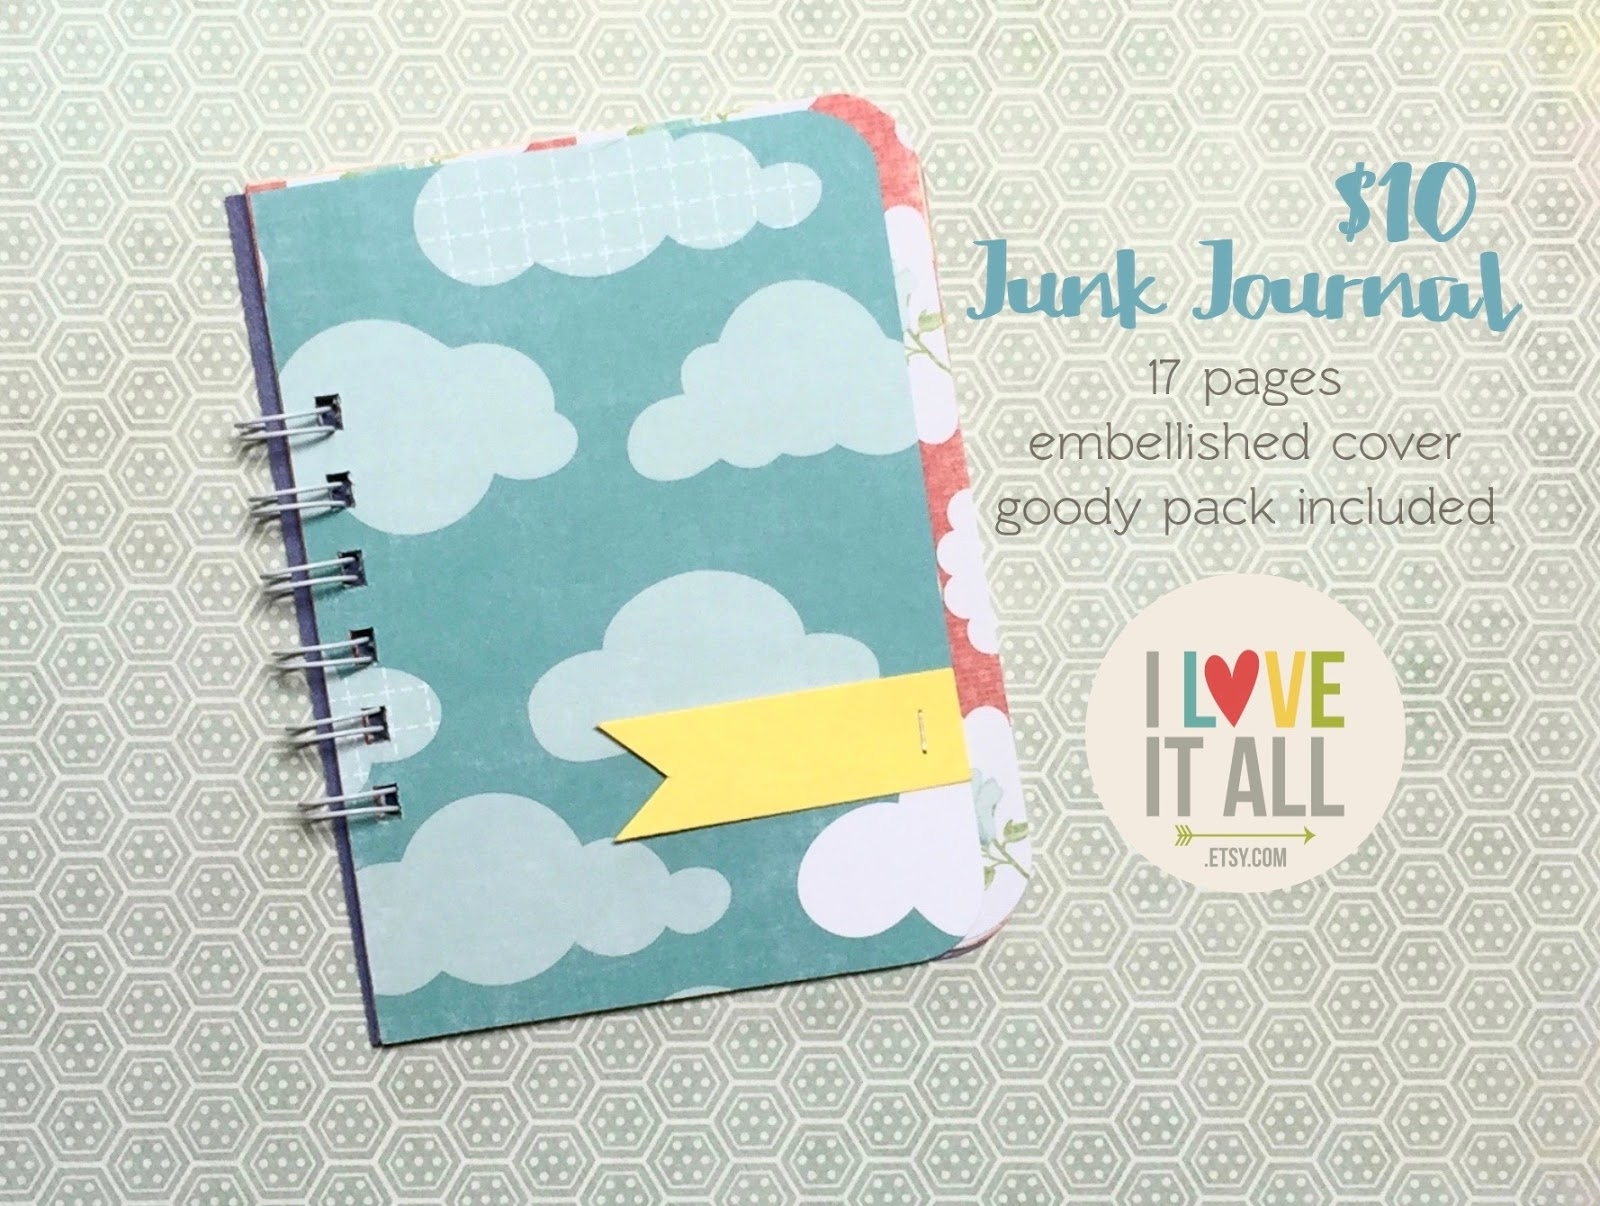 #smashbook #minibook #scrapbook #junk journal #scrapbooking #clouds